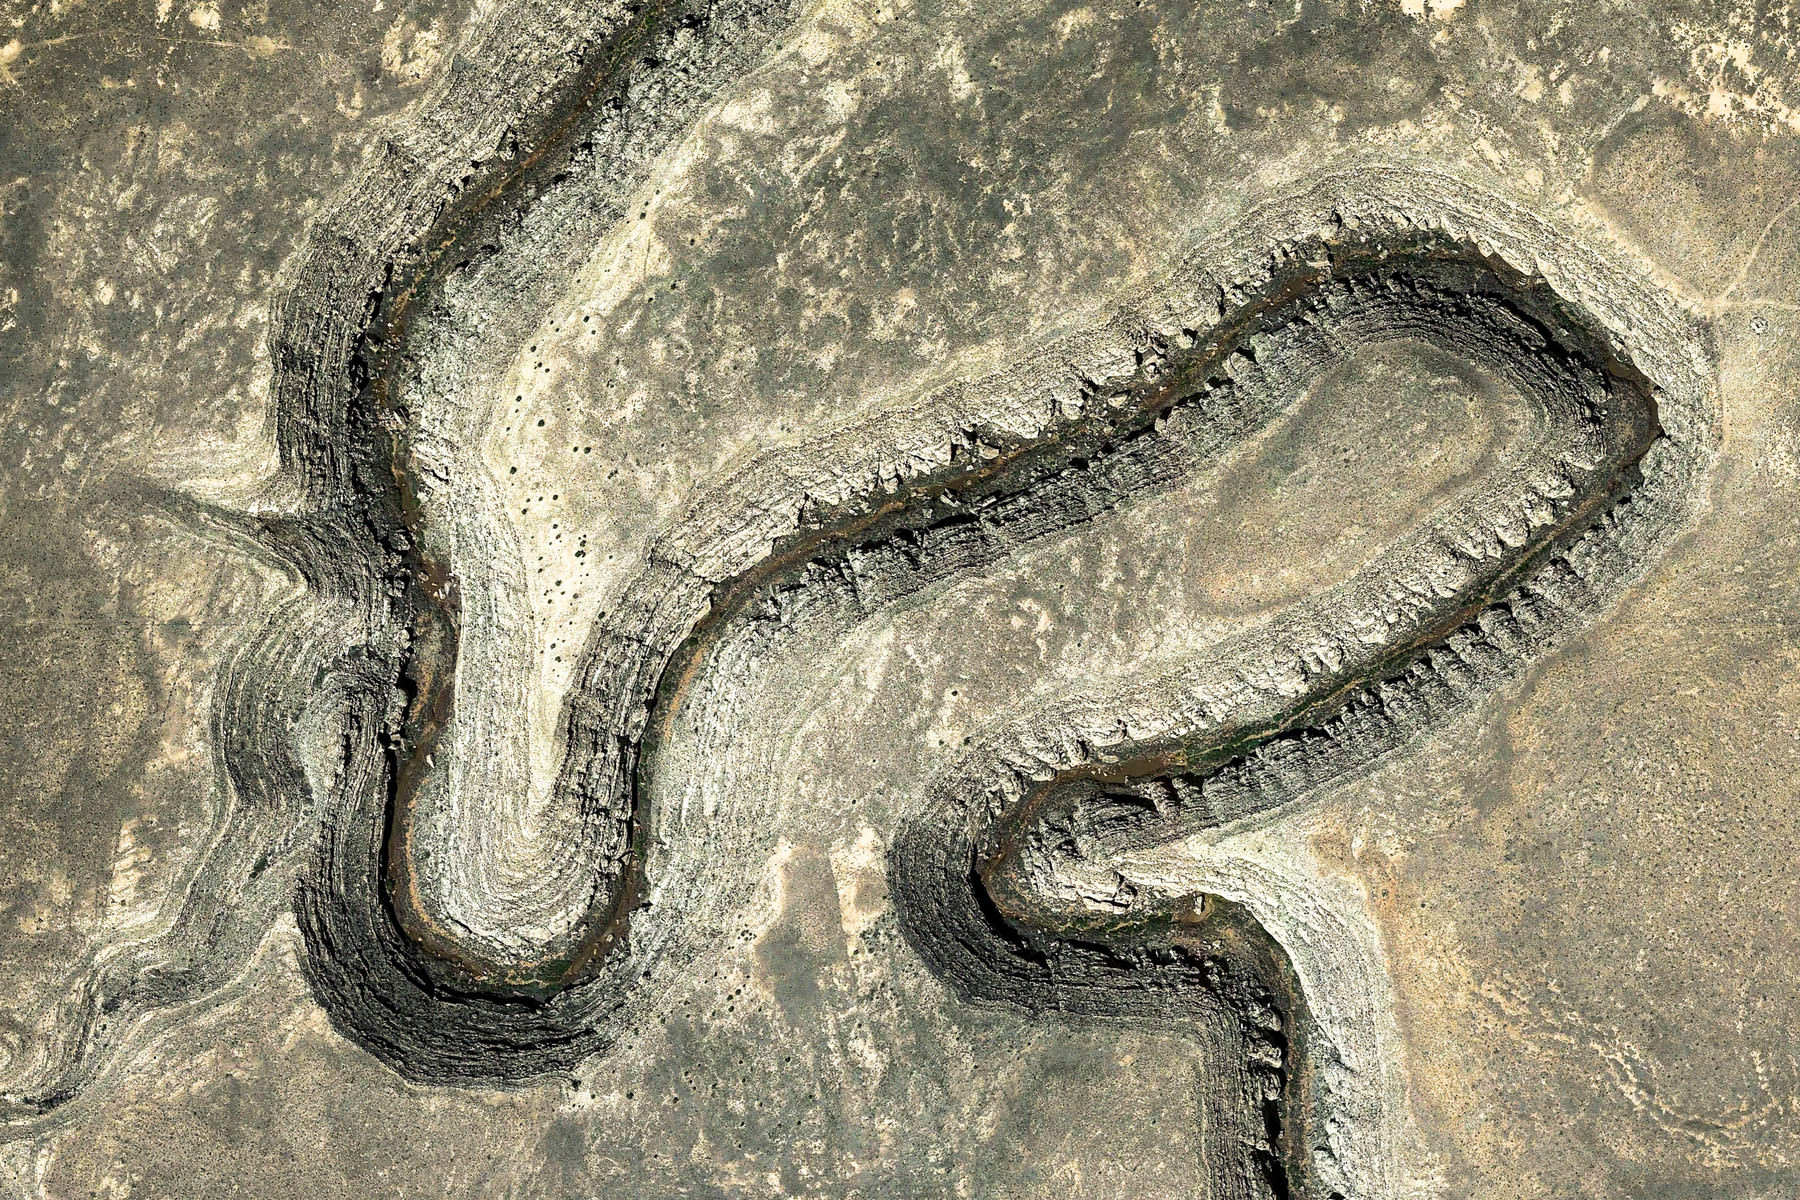 google-earth-US-Leupp-5762